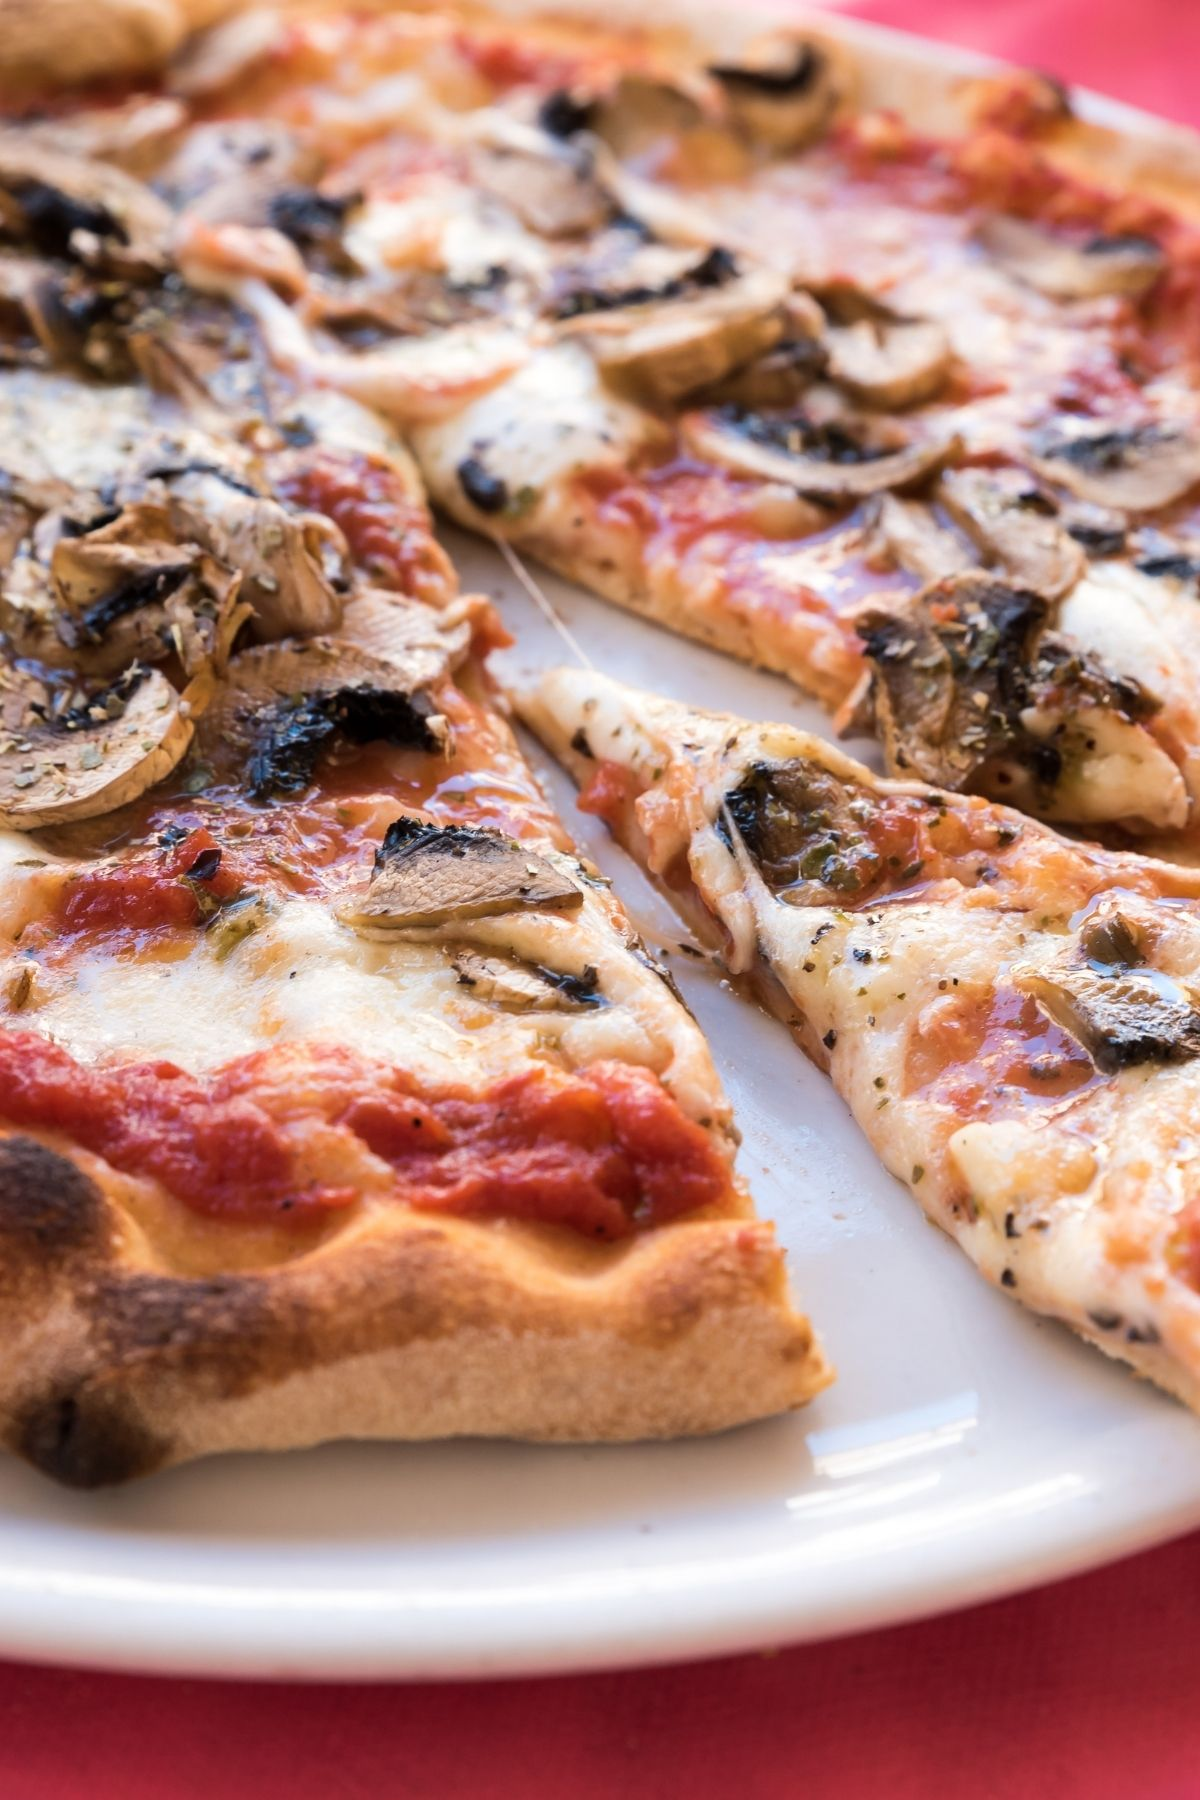 A cheese pizza topped with mushrooms.